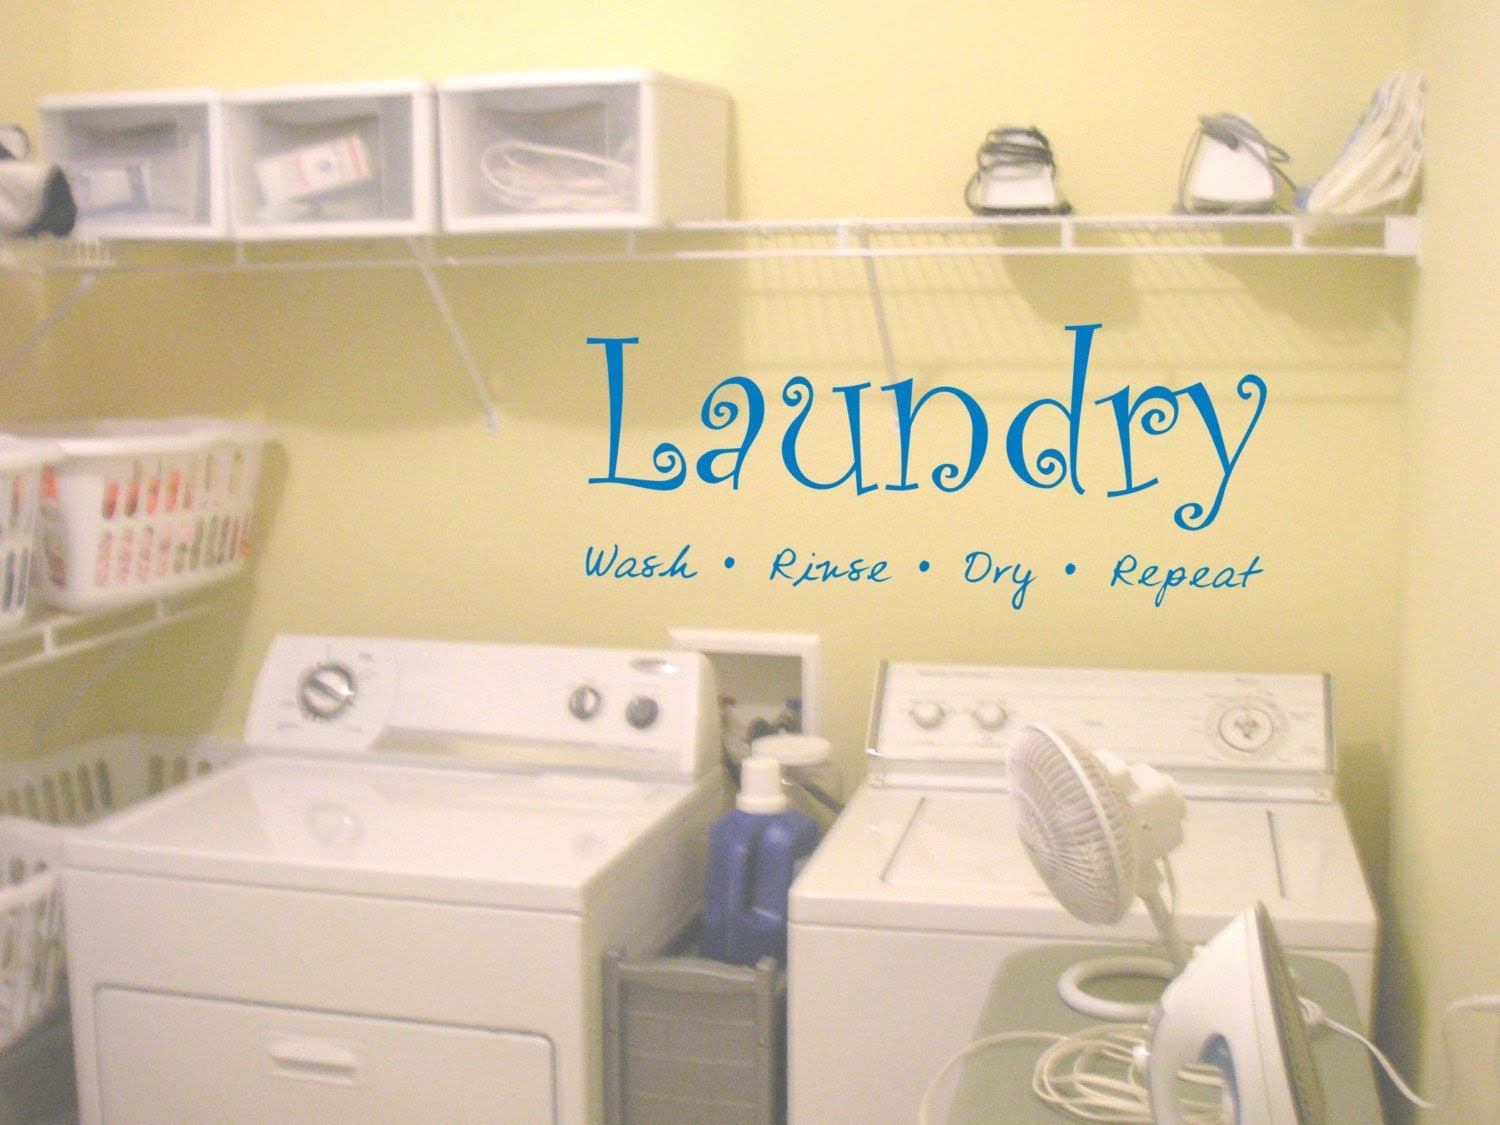 Laundry Room Pictures For Walls | Simple Home Decoration